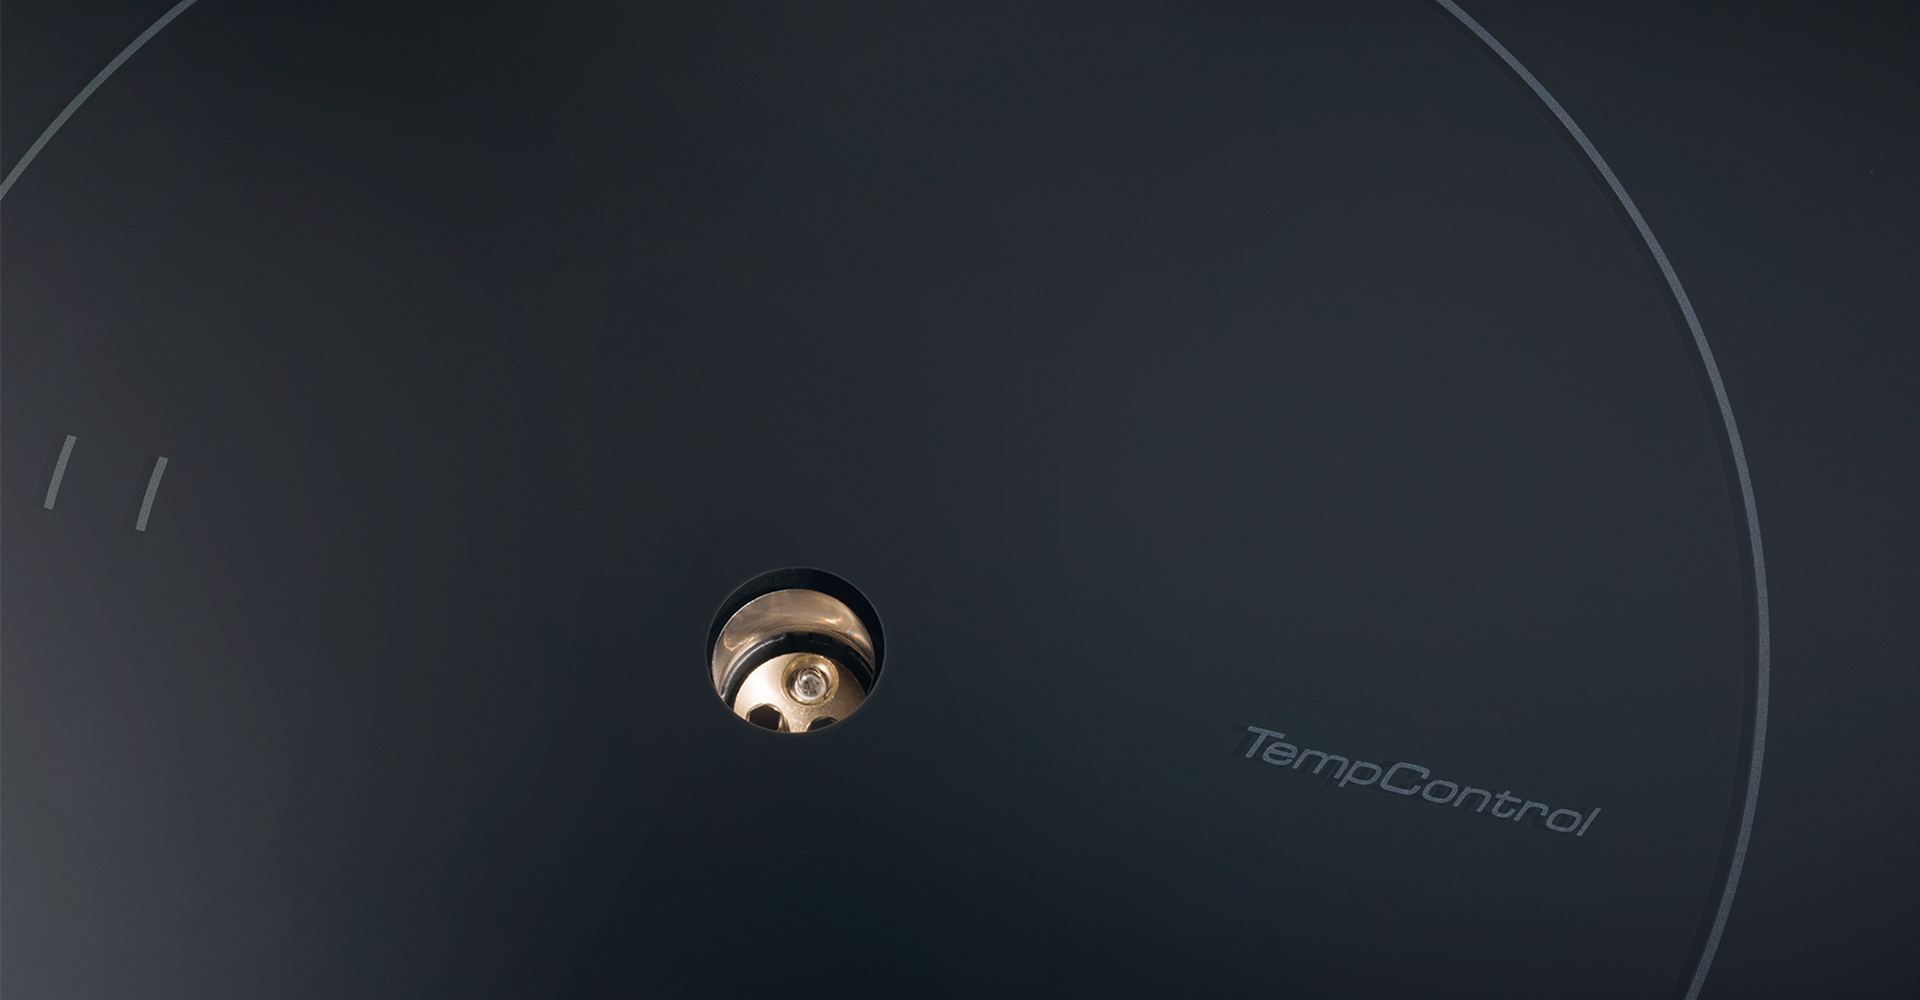 The New Induction Hob With Tempcontrol